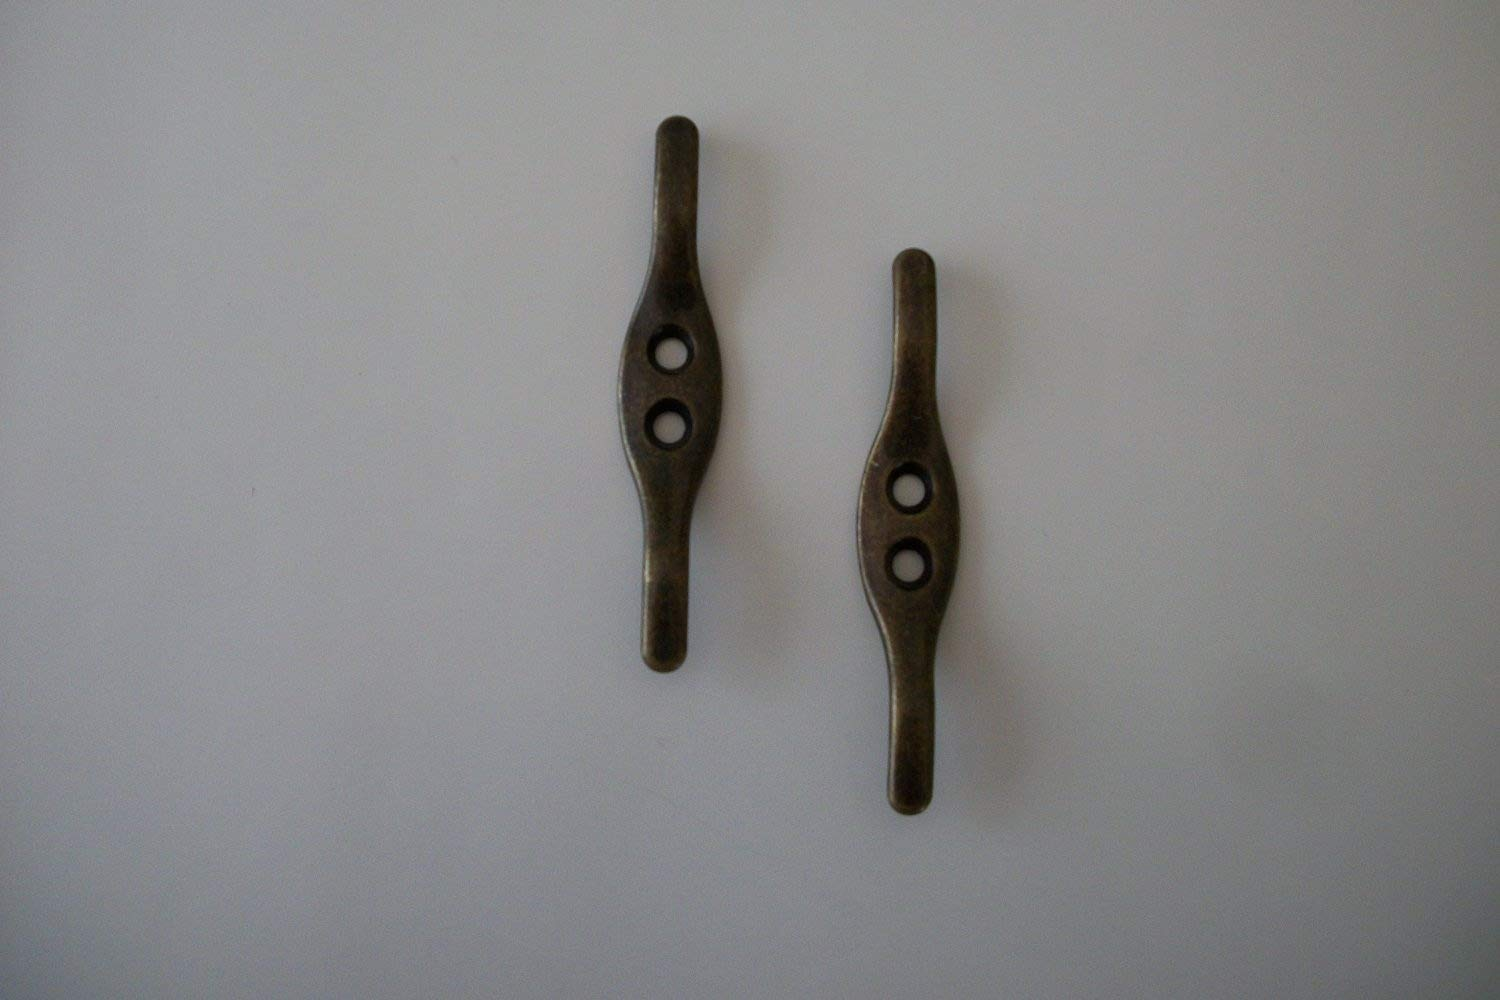 Antique Brass Color Cord Cleats (1 Pair)